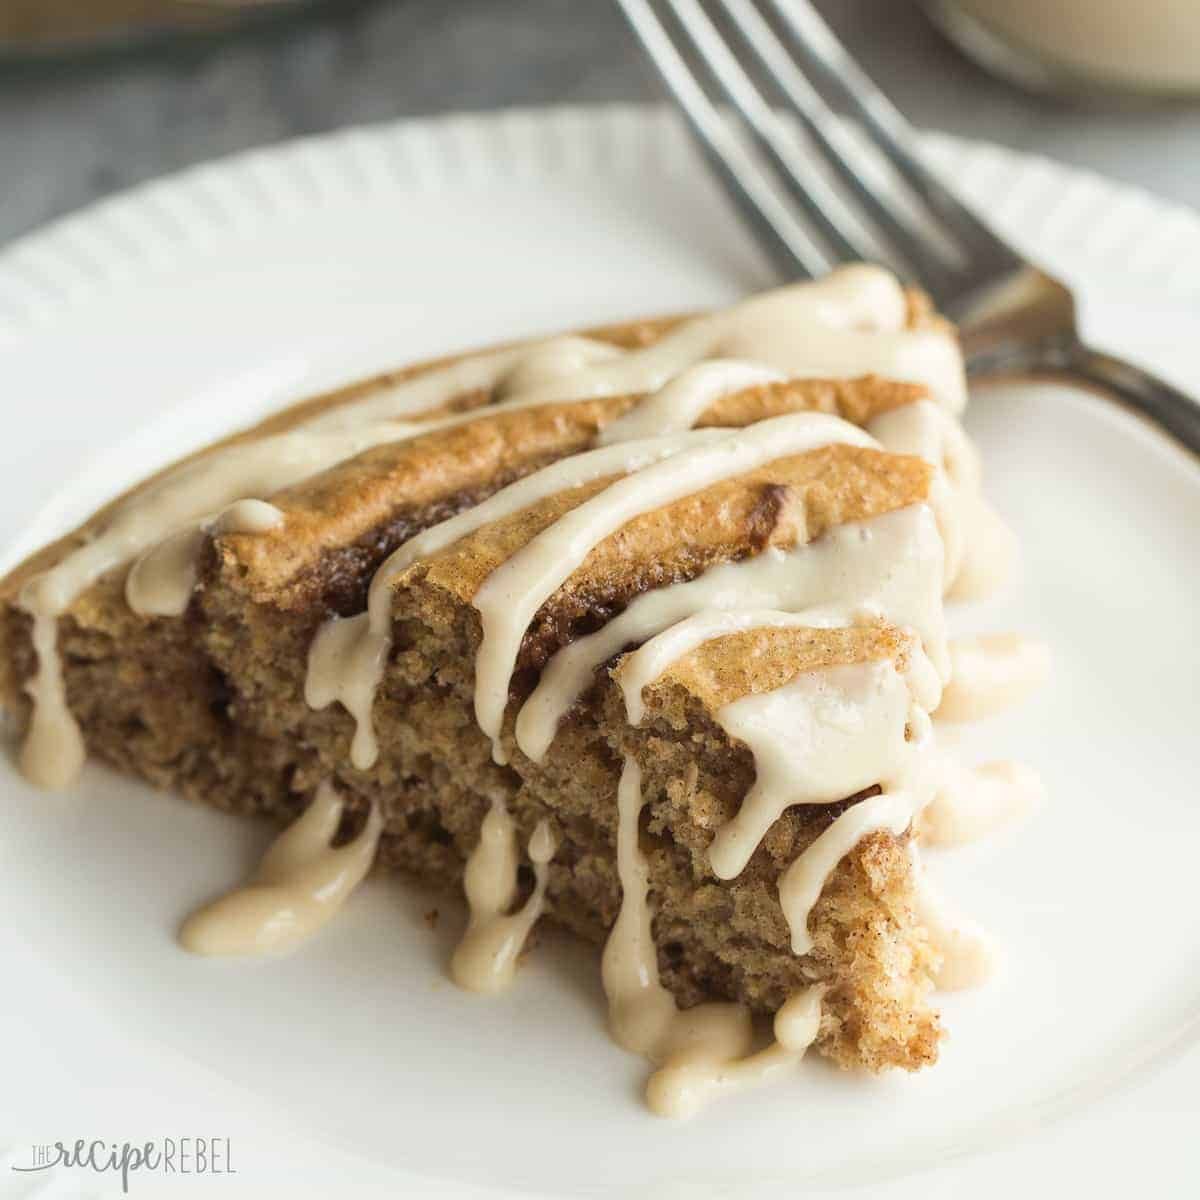 This Healthier Cinnamon Roll Baked Pancake is whole wheat, low in sugar, and bakes in a pie plate so there's no flipping or waiting! Drizzle with easy Maple Cream Cheese Syrup for a special treat!